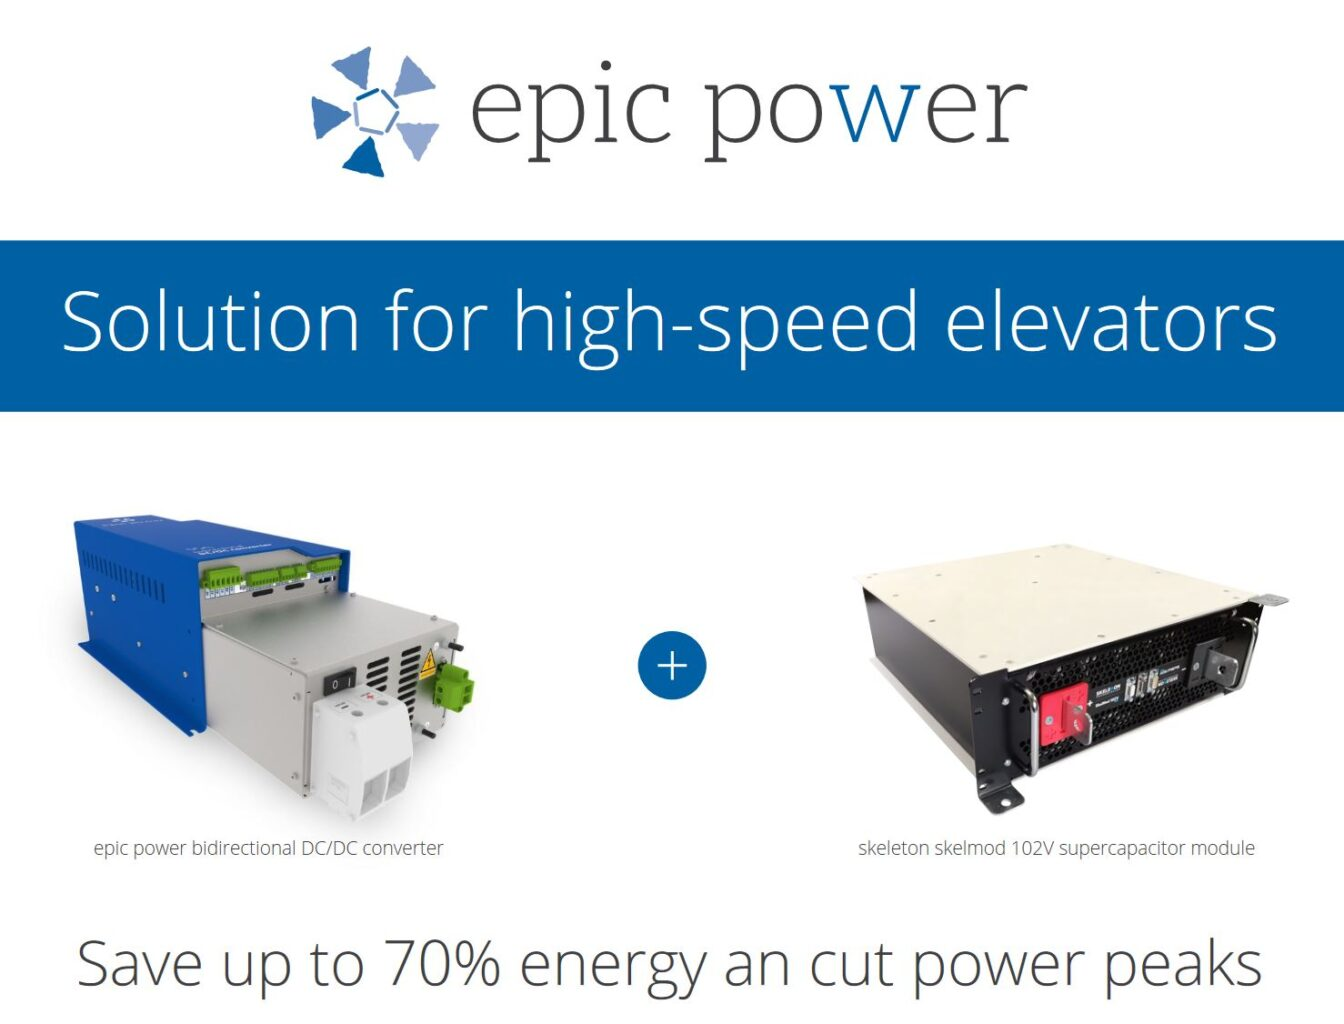 Solution for high-speed elevators